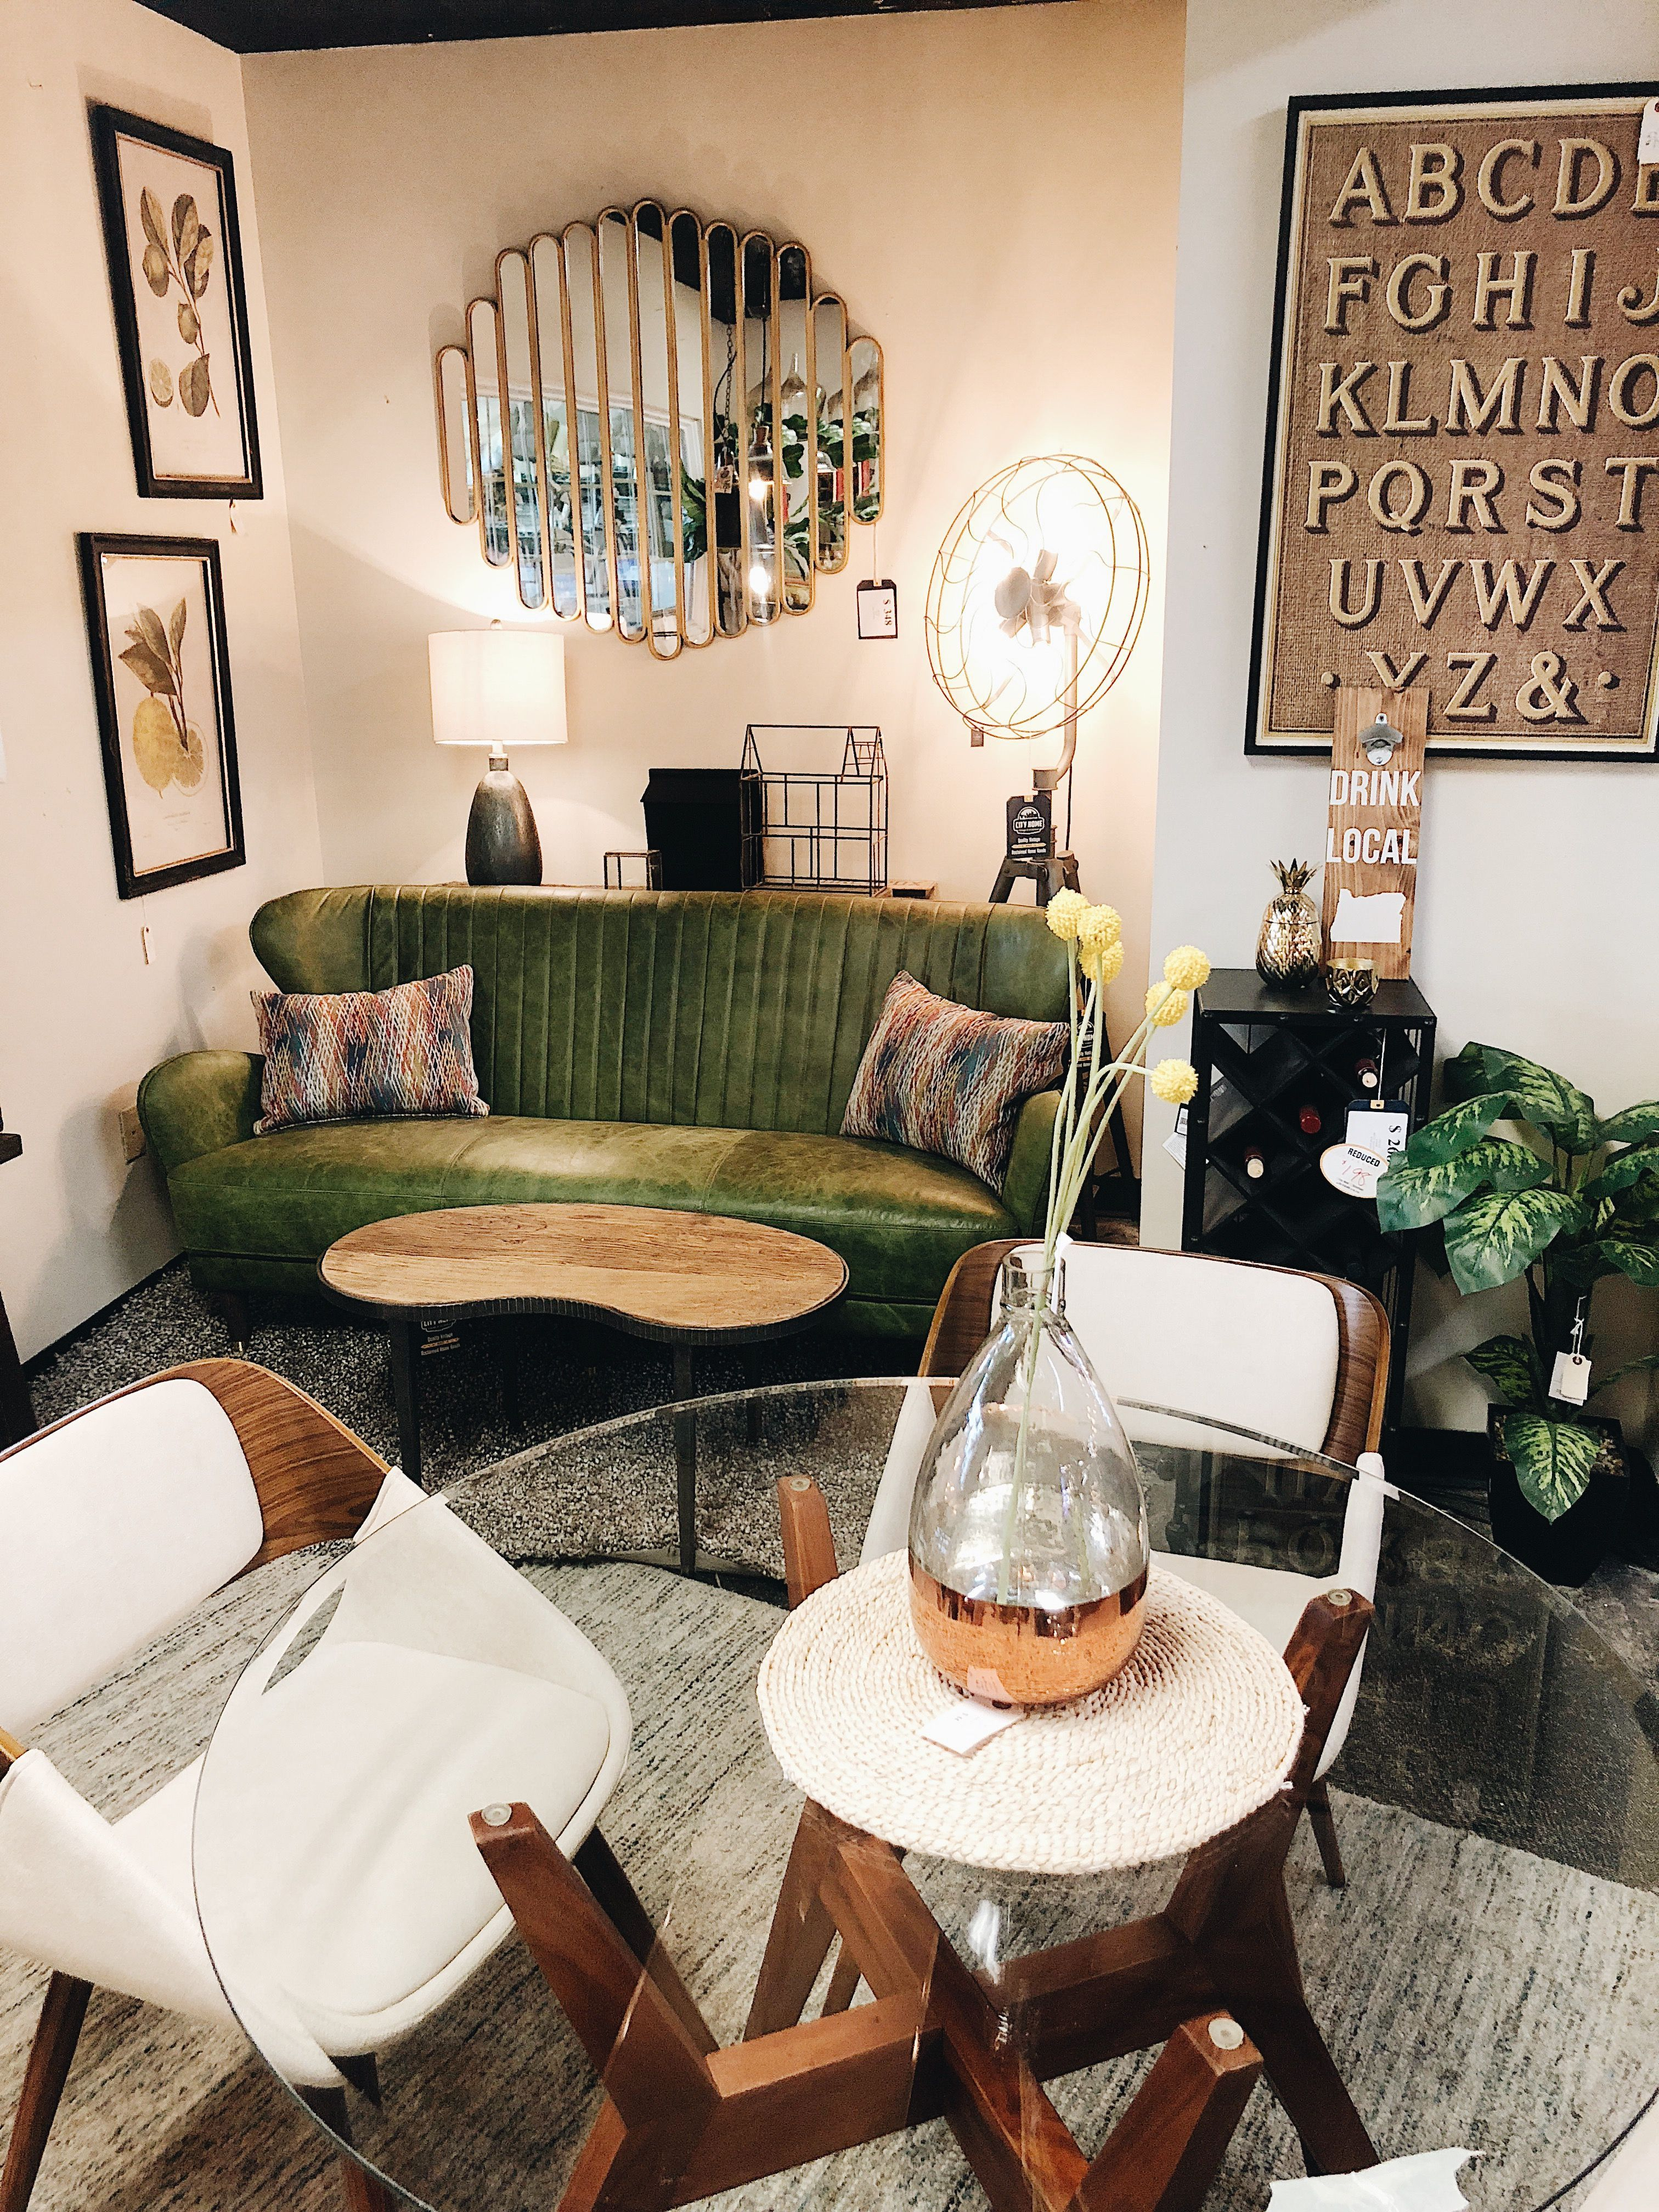 Shop mid century modern furniture and decor at city home in portland oregon